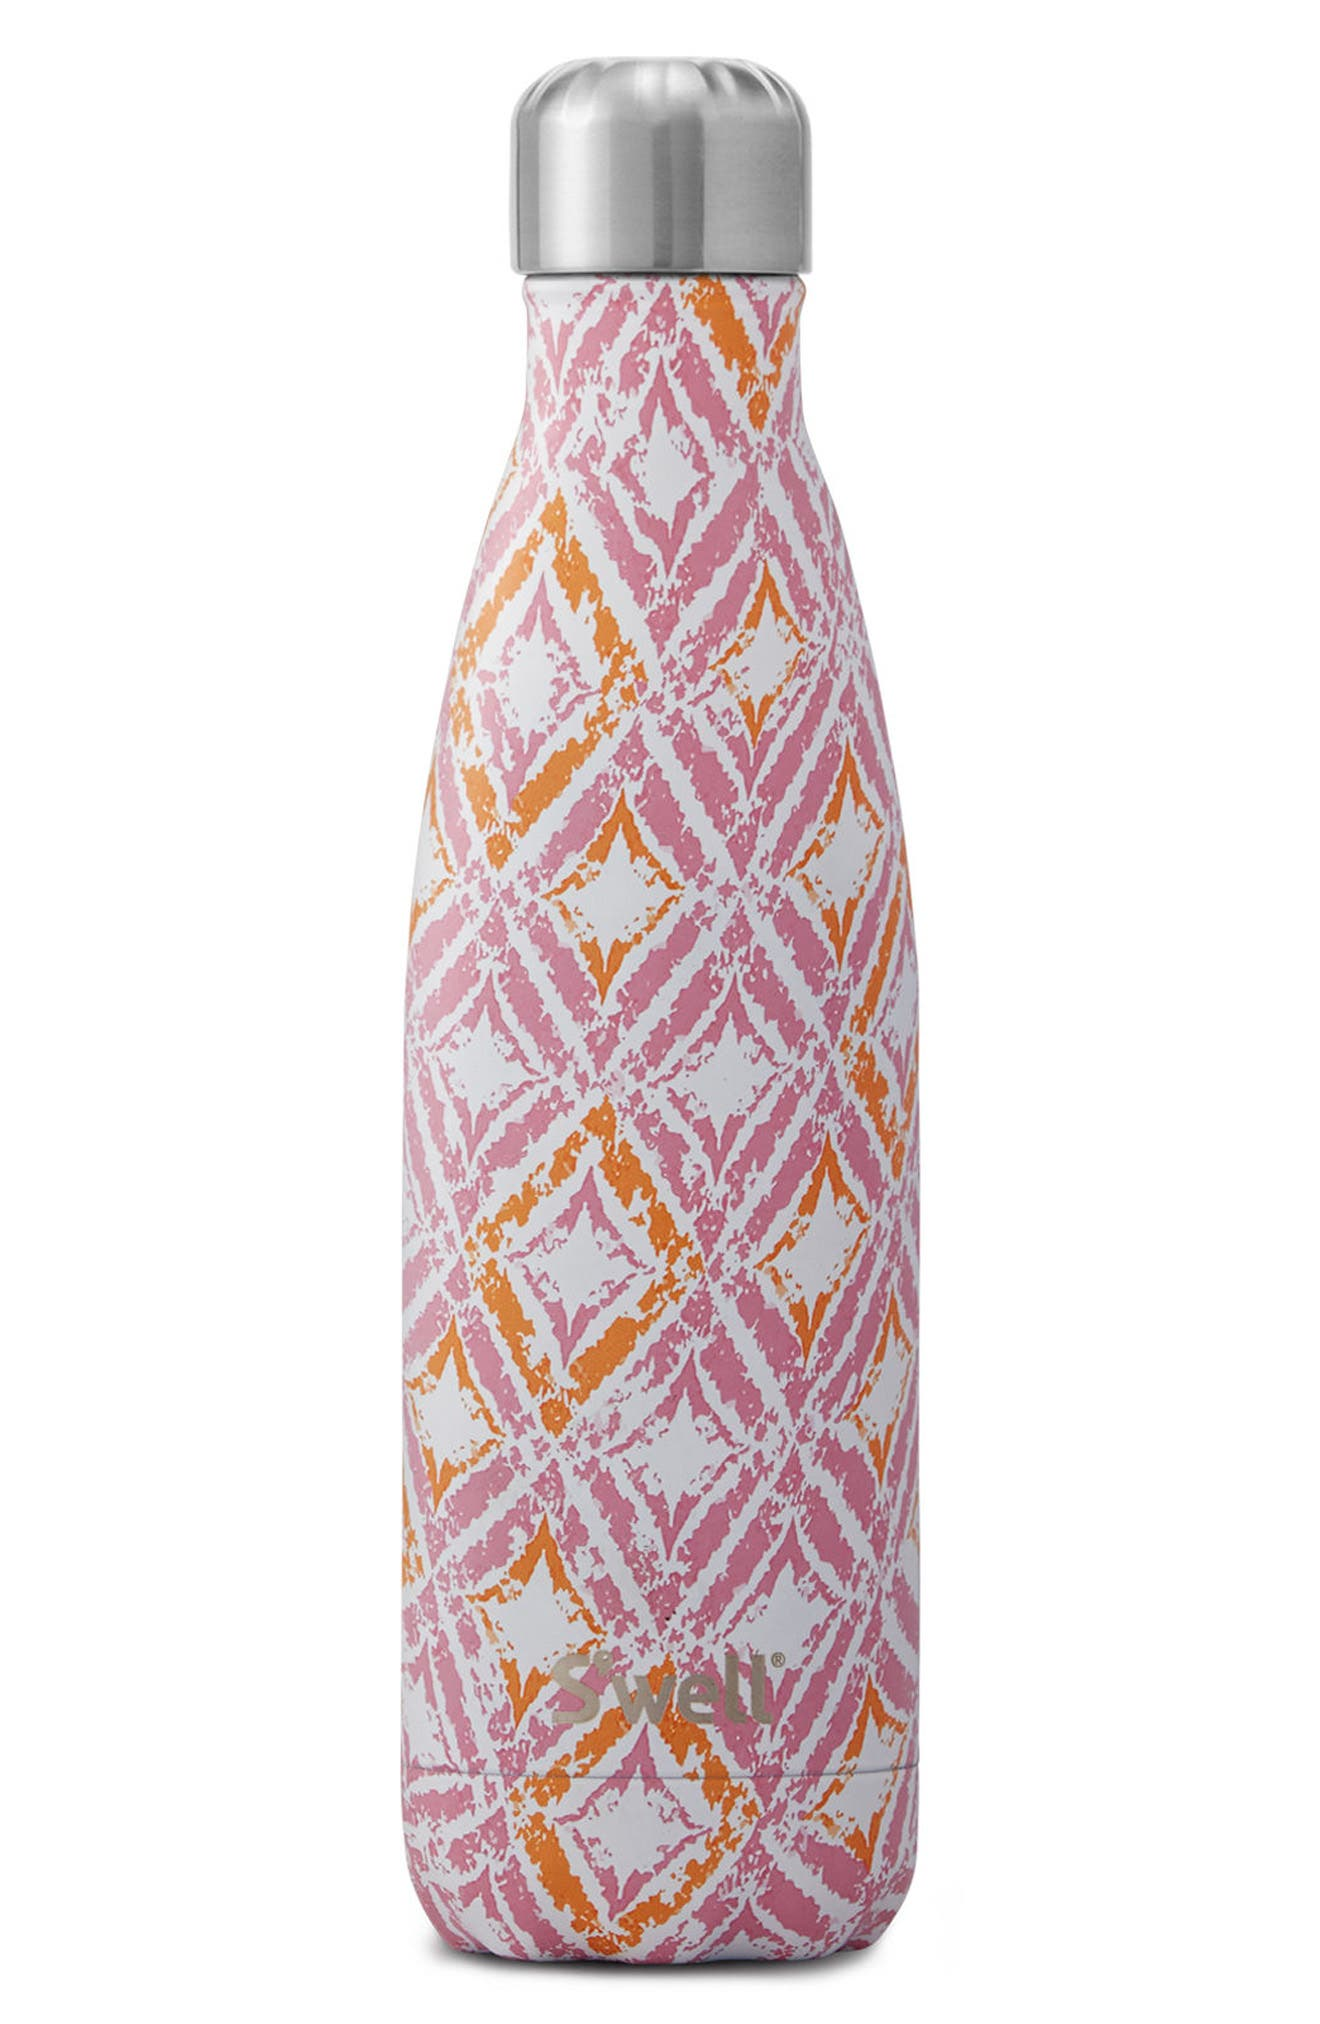 Main Image - S'well Odisha Insulated Stainless Steel Water Bottle